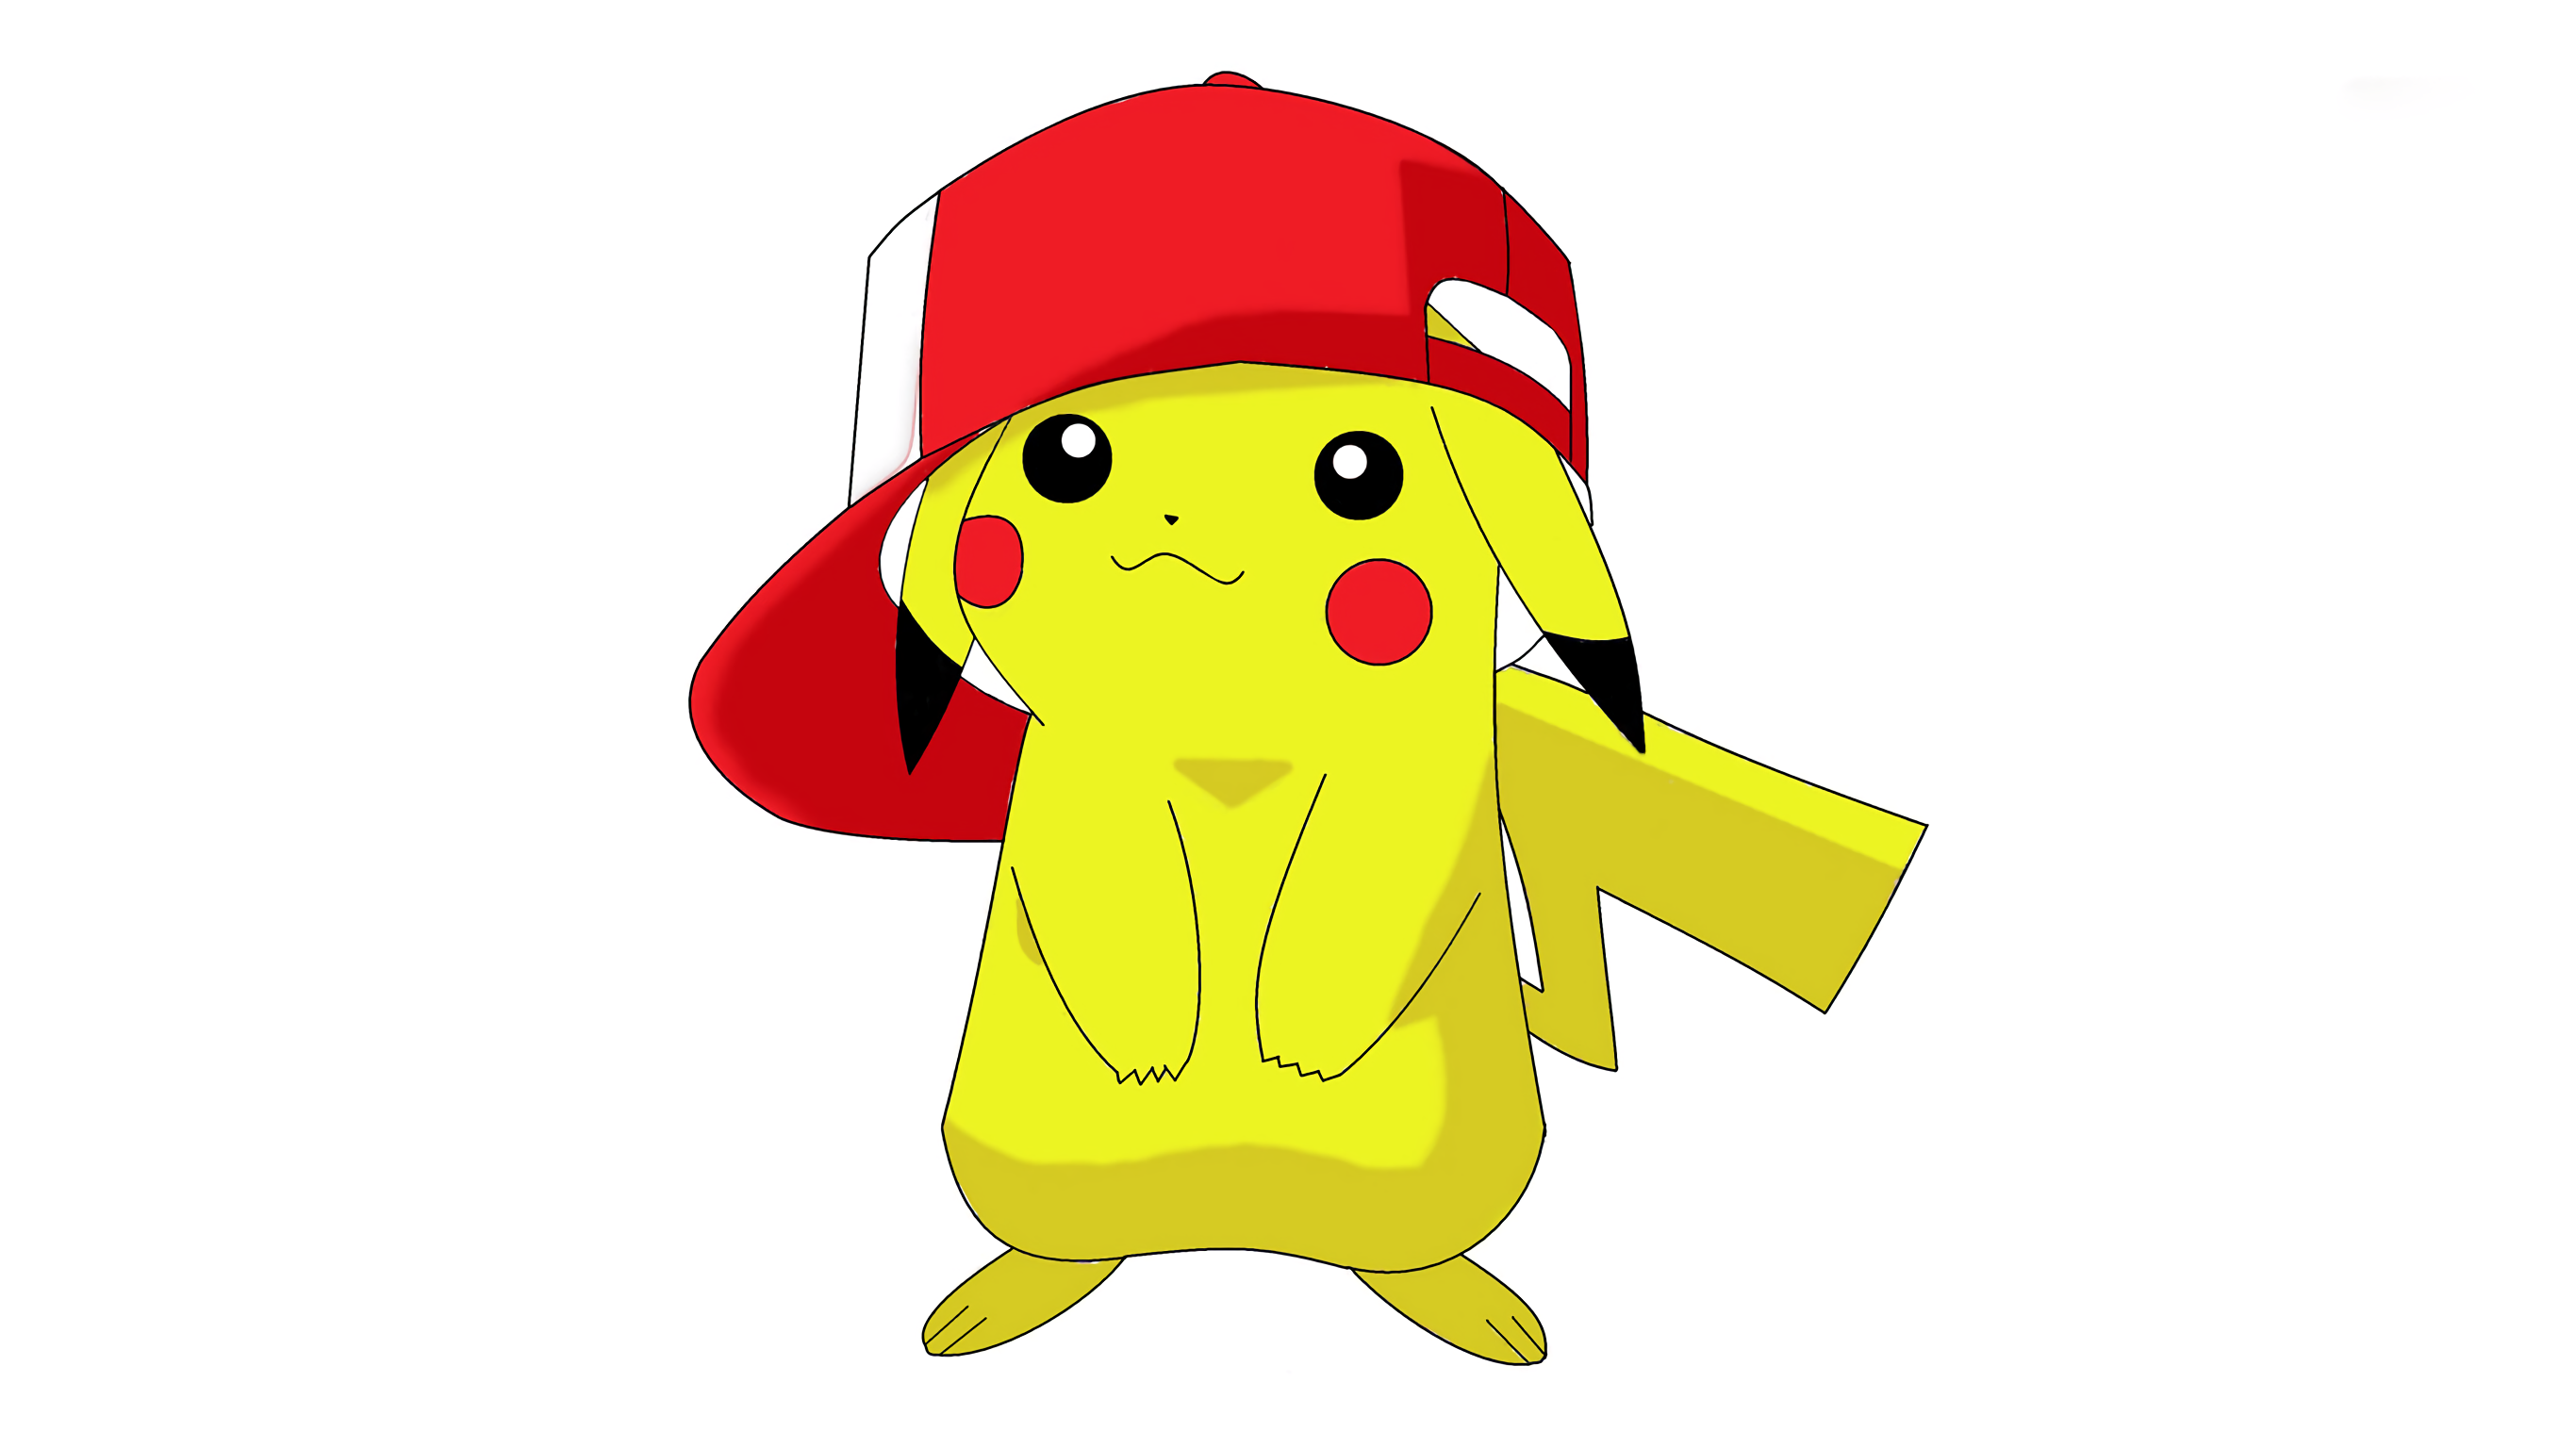 Anime - Pokémon Pikachu Anime Video Game Wallpaper - Pokemon HD PNG